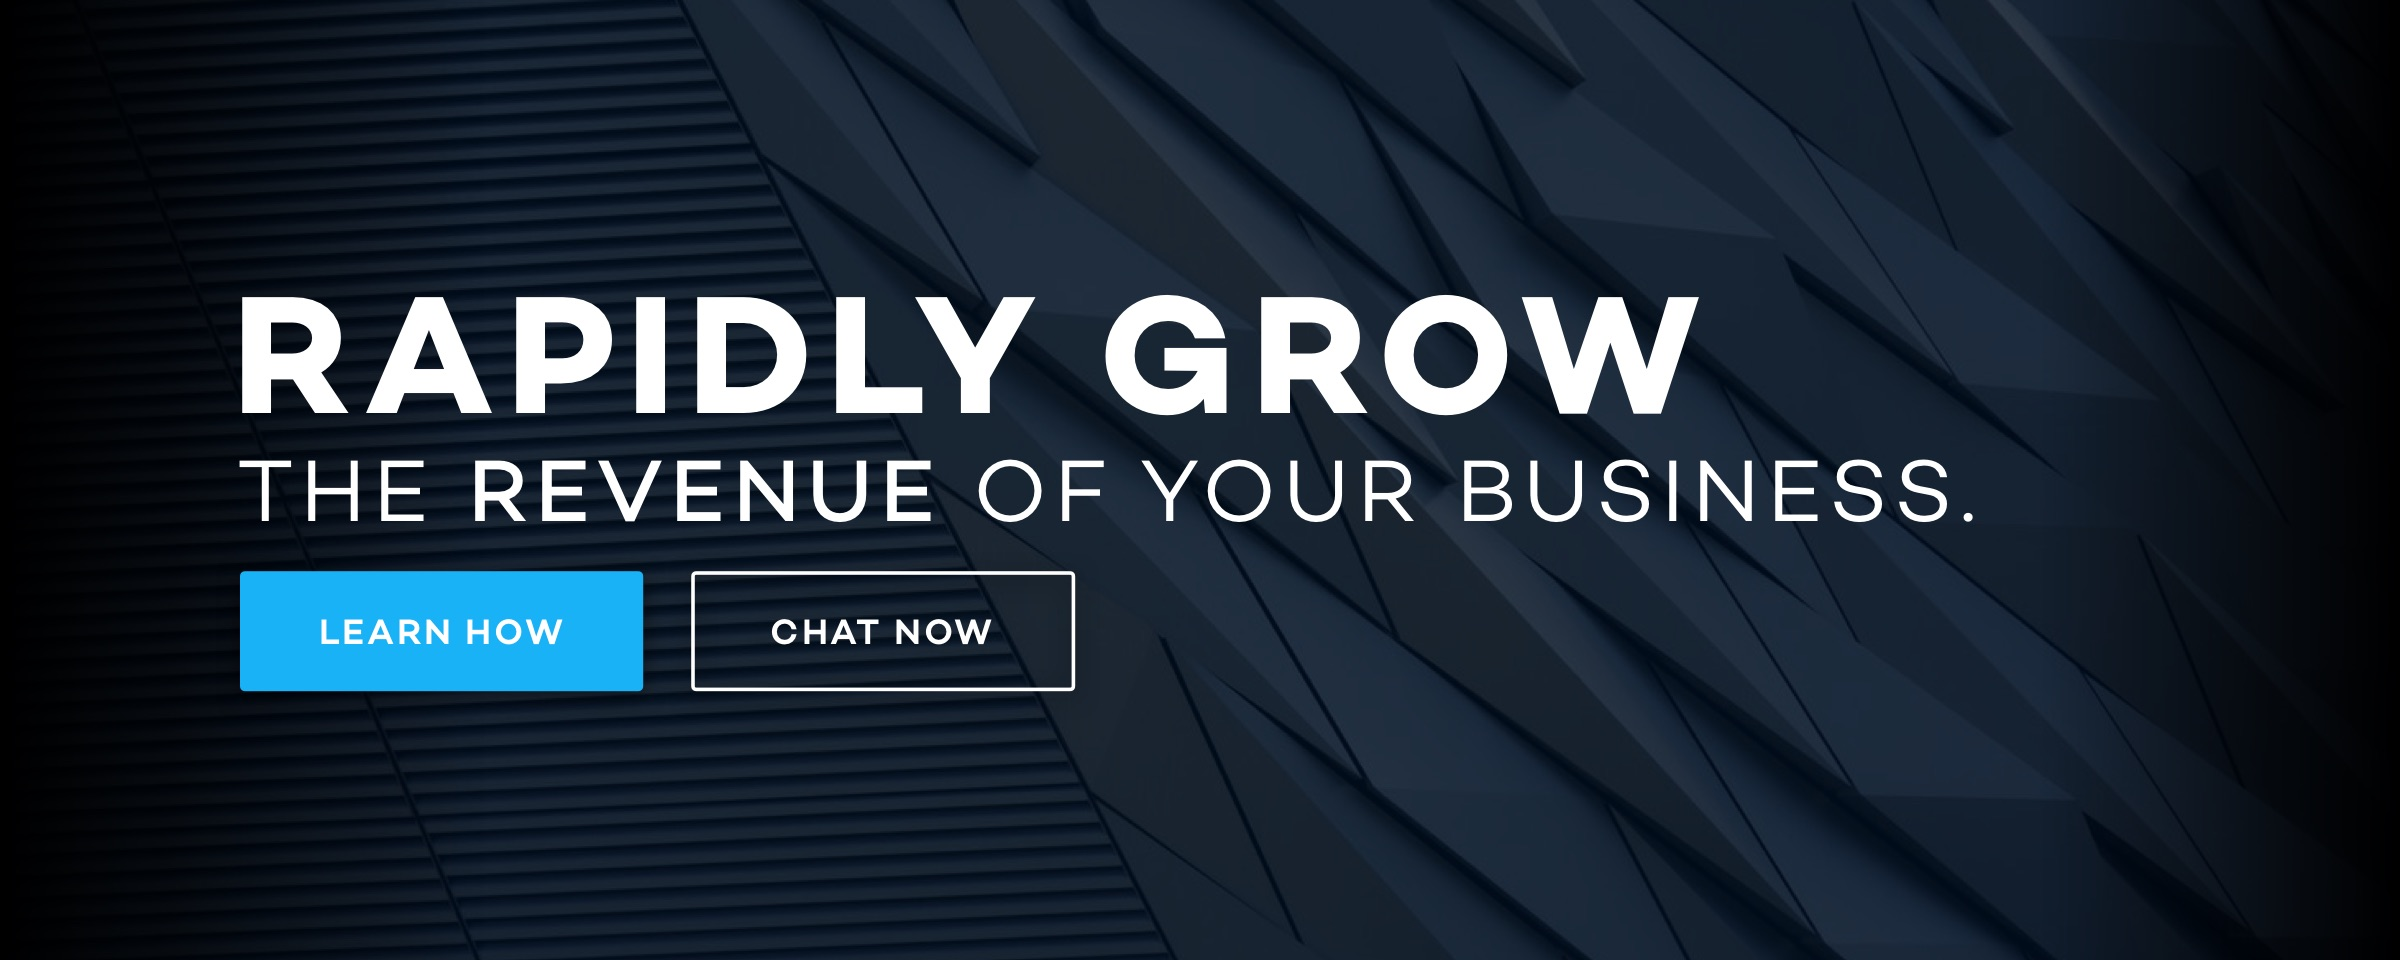 Rapidly grow the revenue of your business